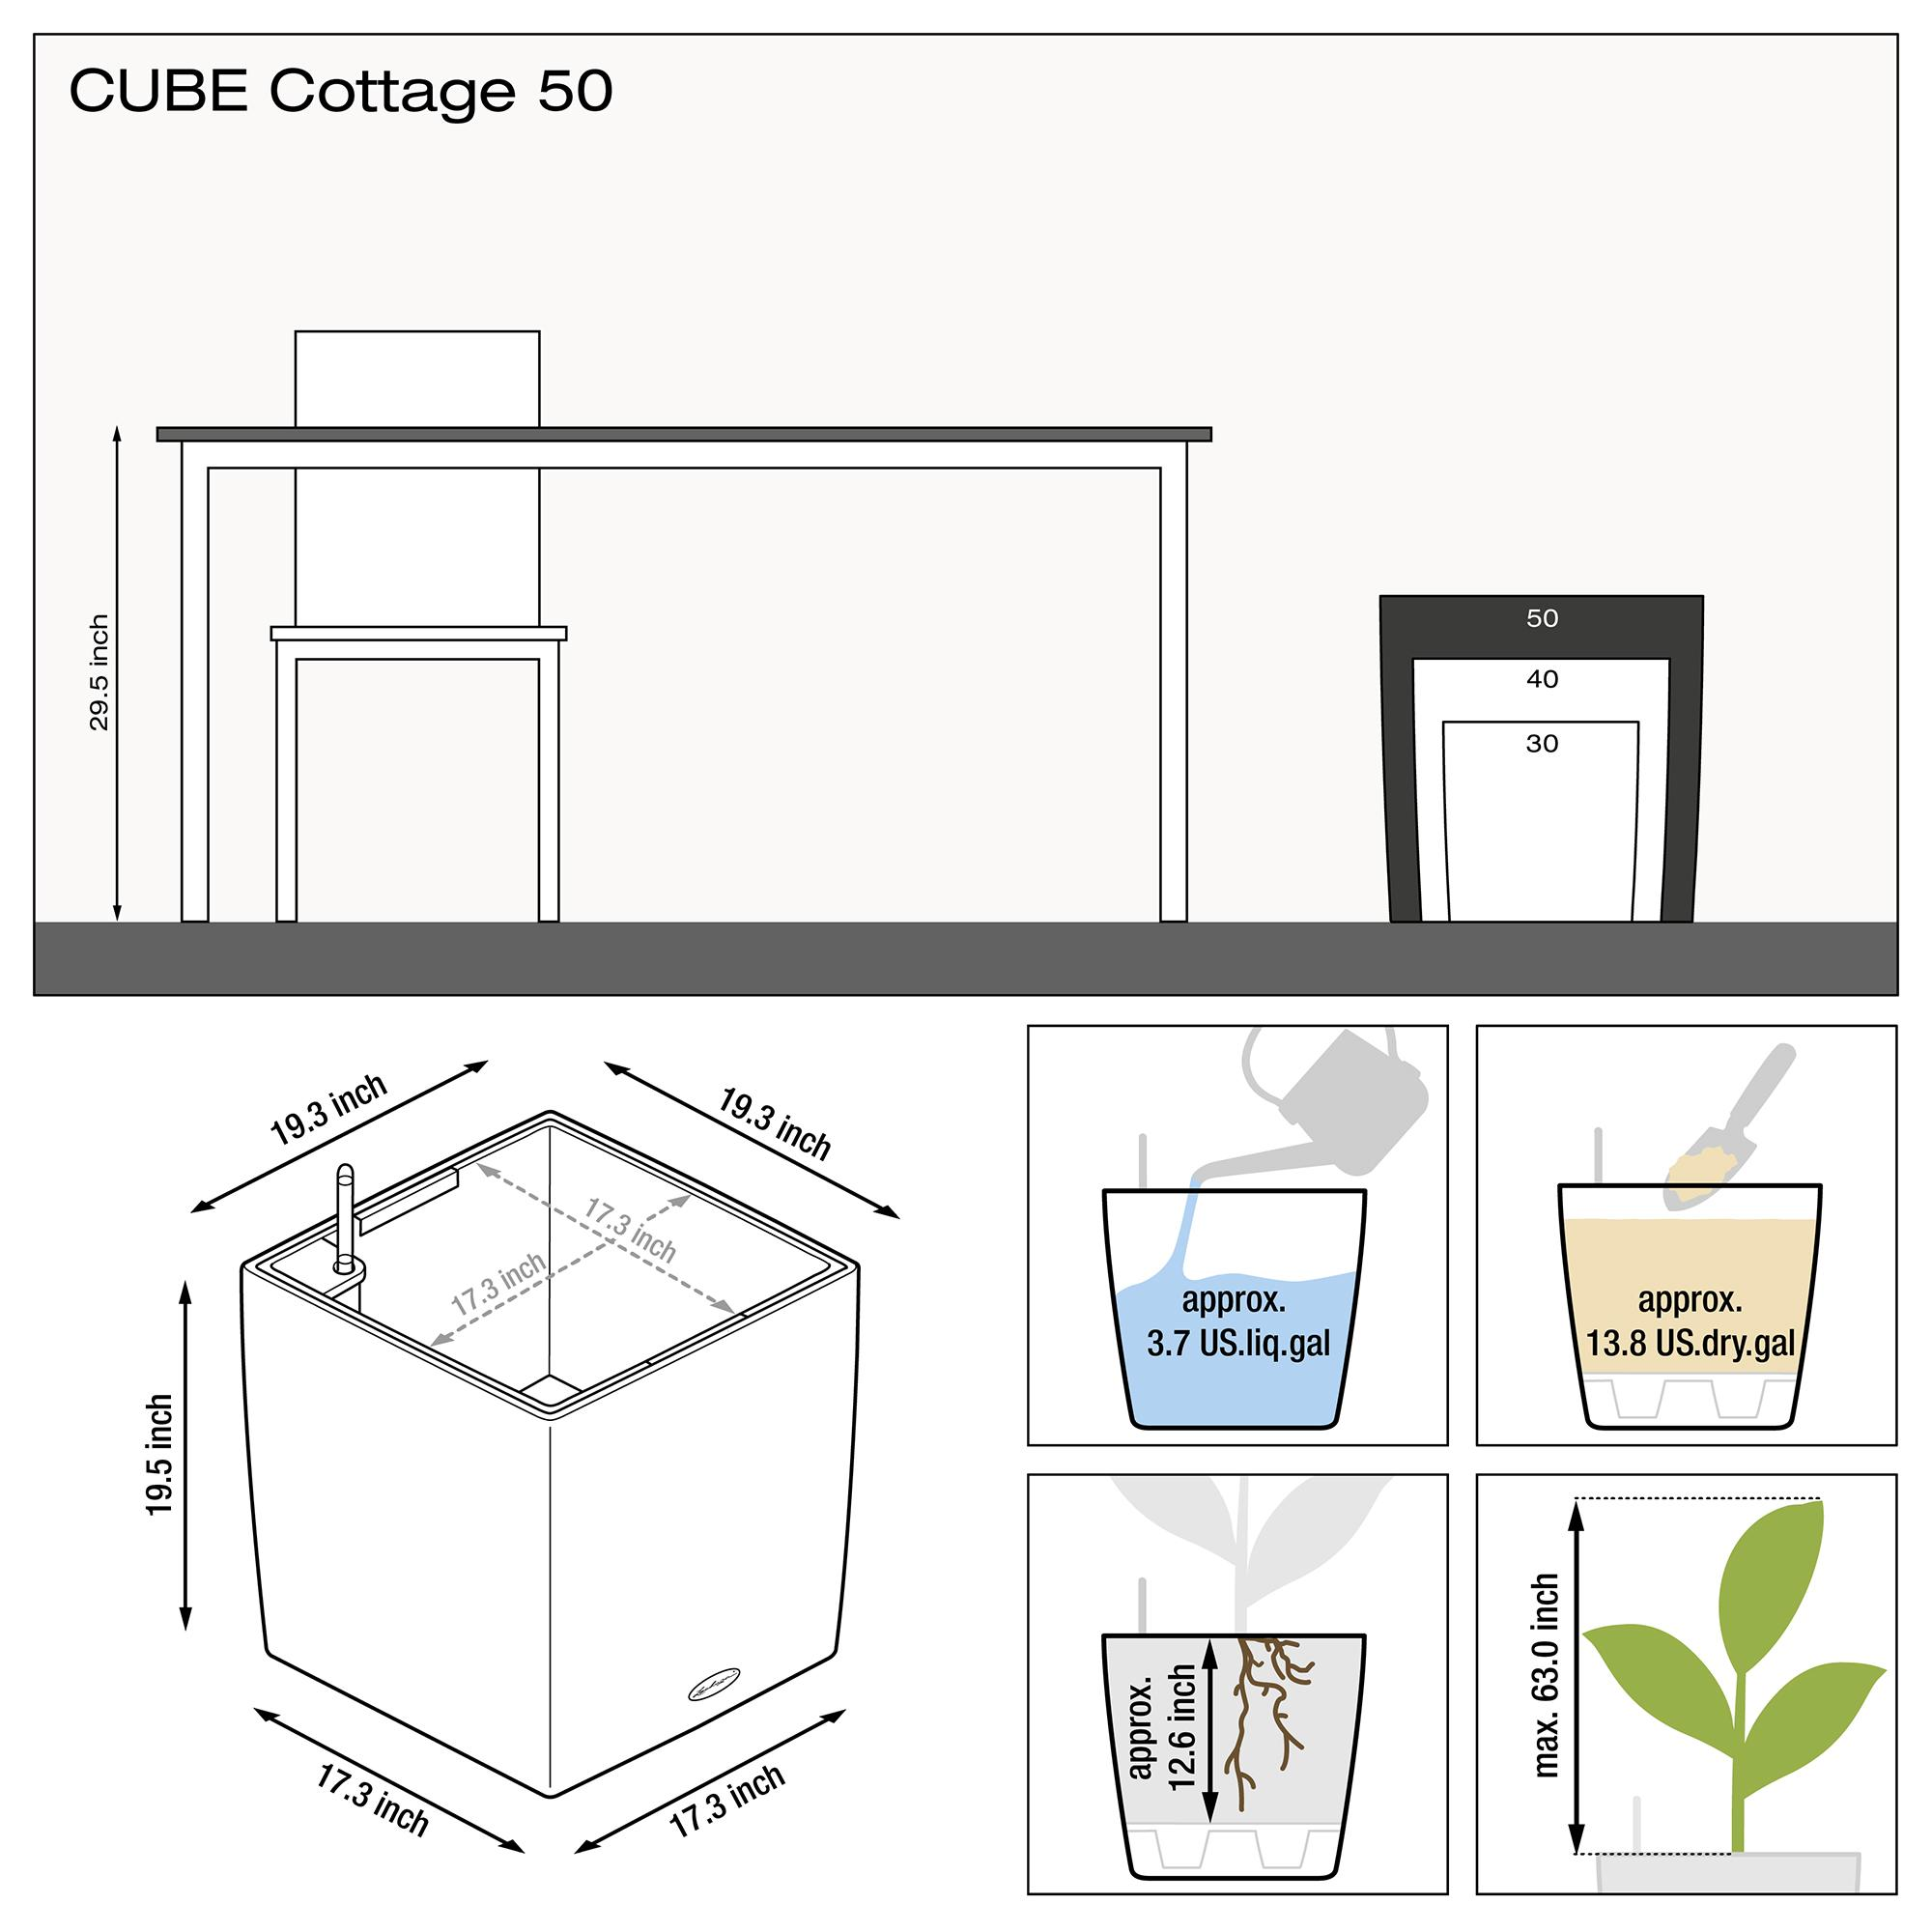 le_cube-cottage50_product_addi_nz_us